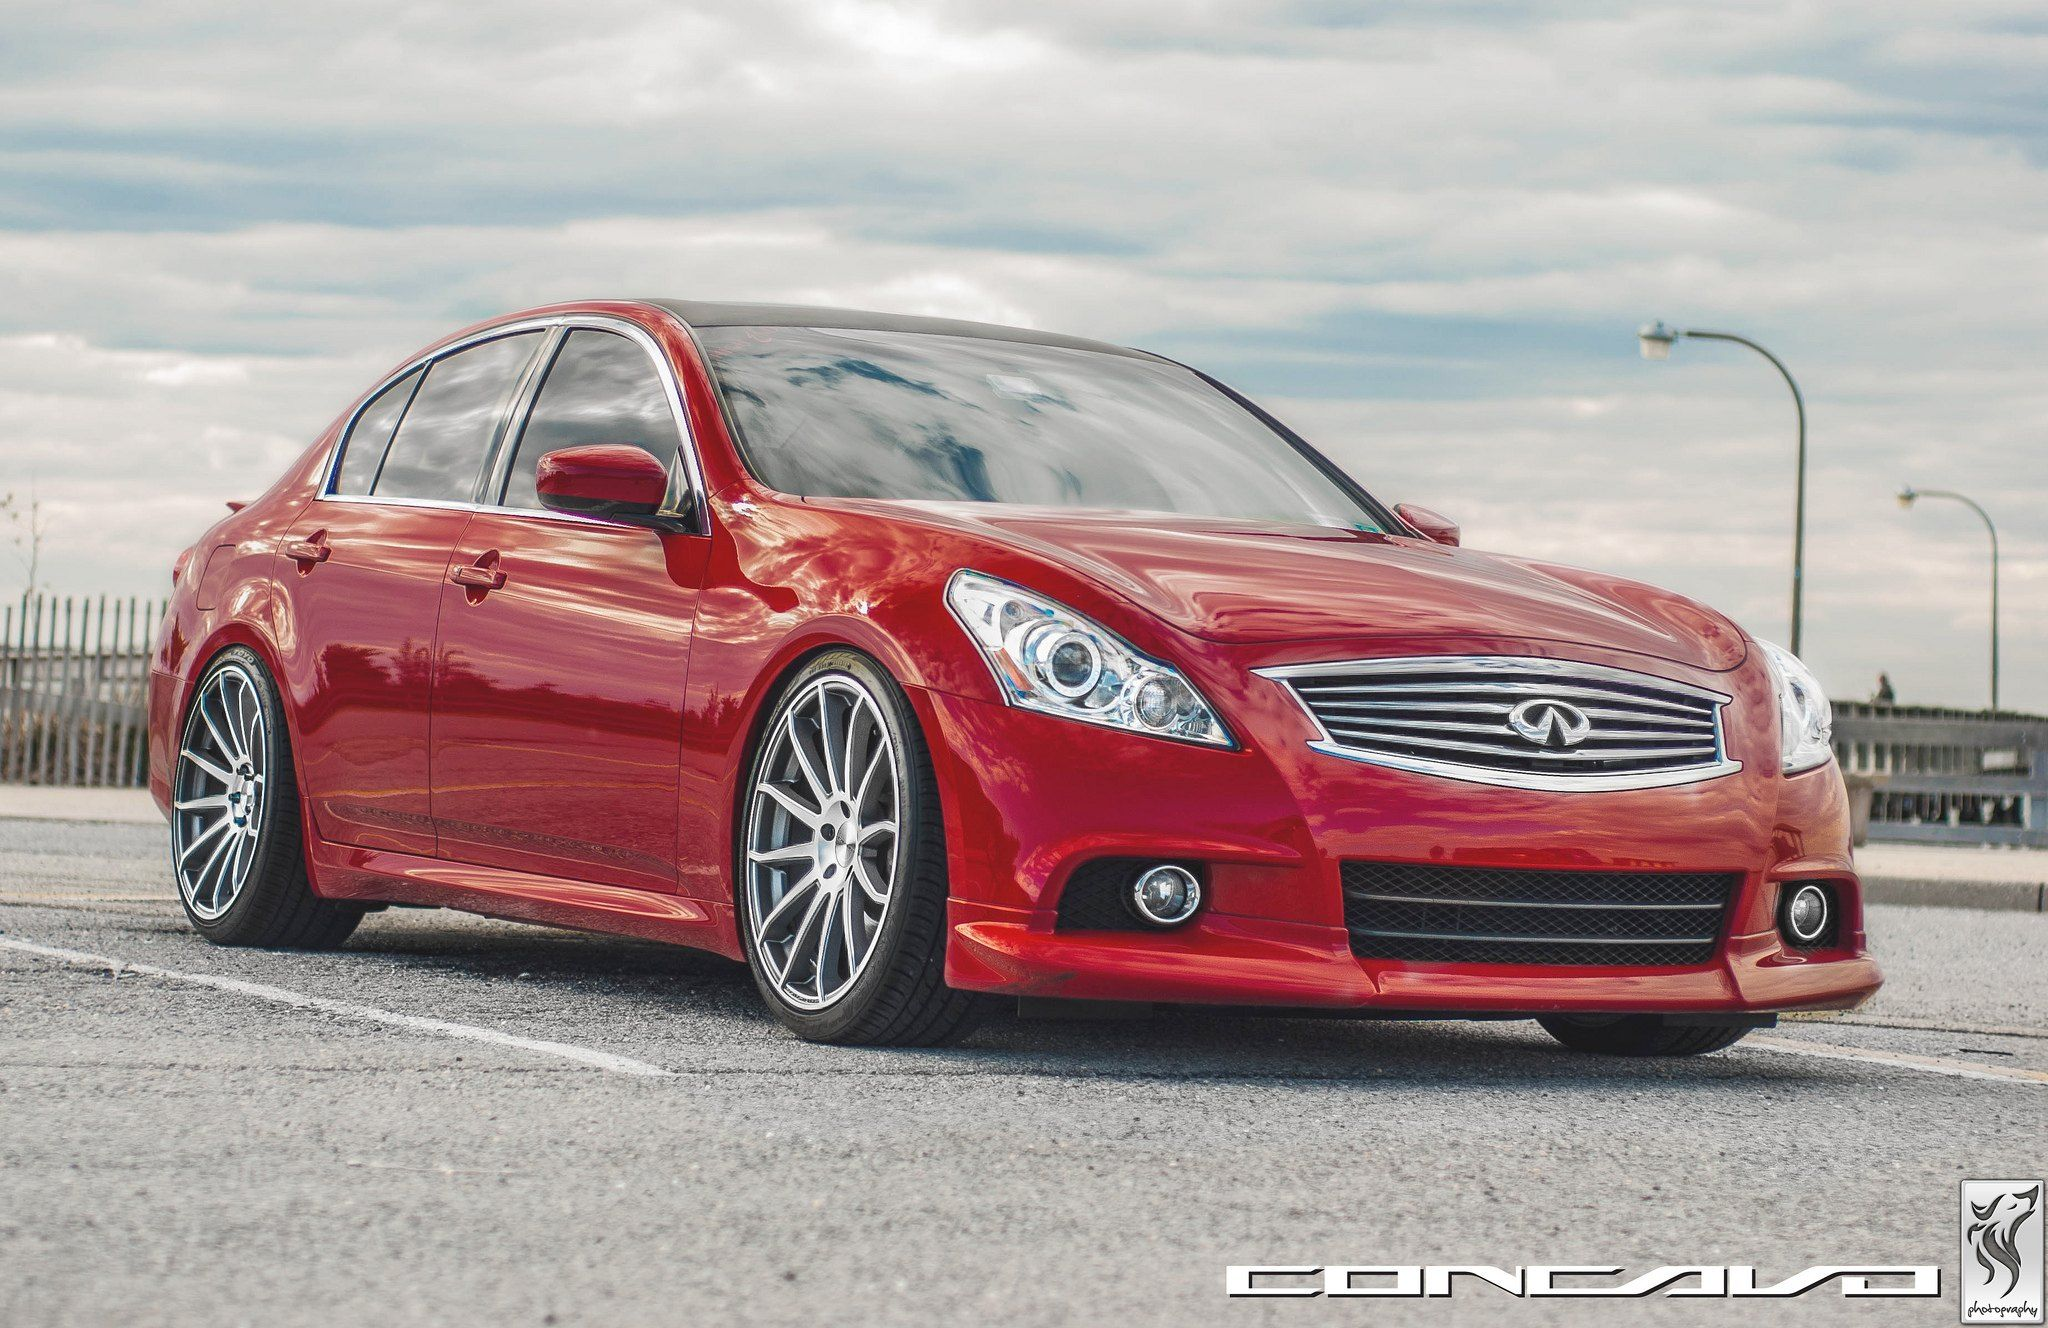 Low Stance And Vossen Rims Enrich Red Infiniti G37 Sedan G37 Sedan Infiniti G37 Sedan